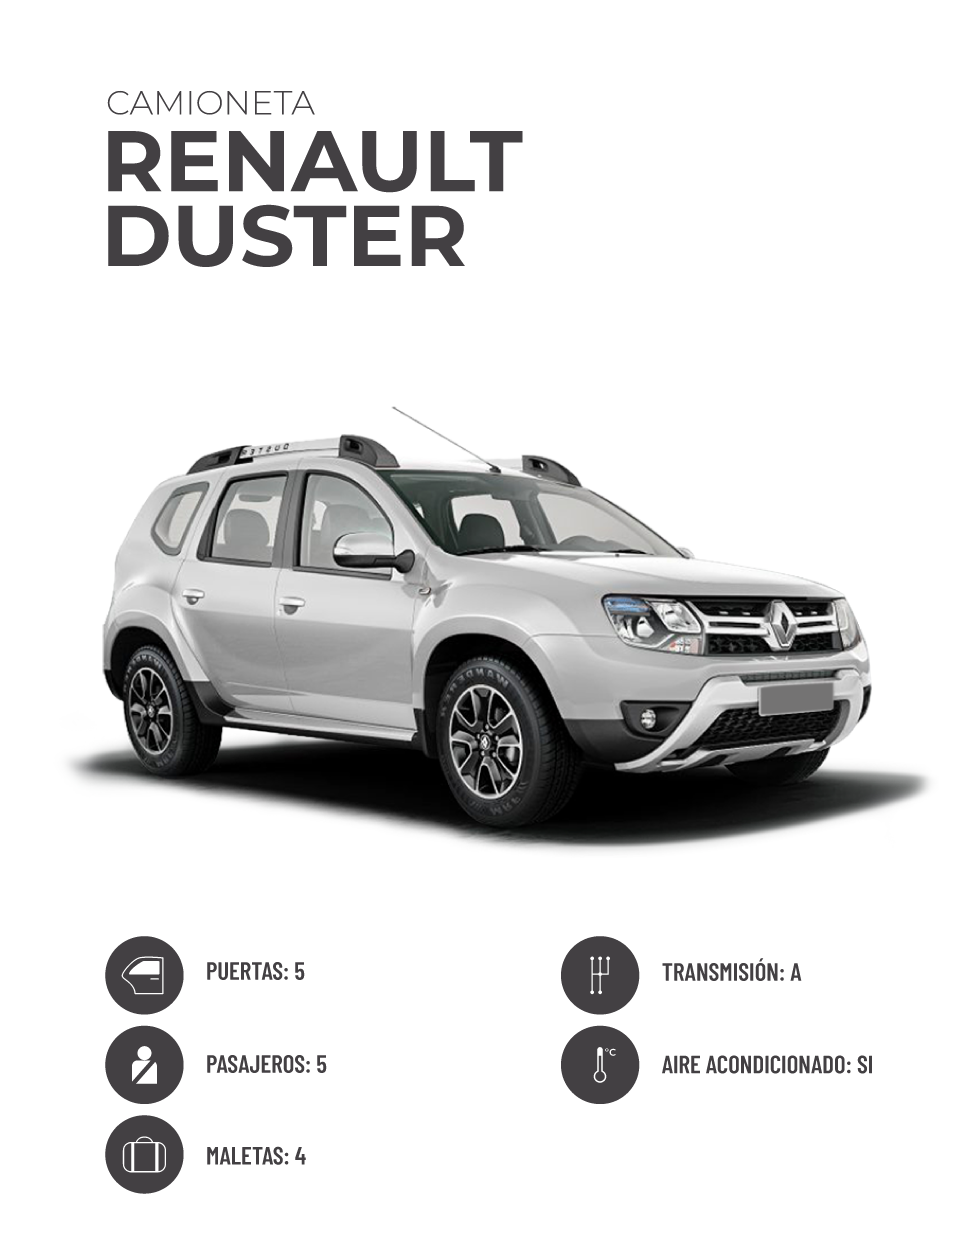 DUSTER-mobile-001